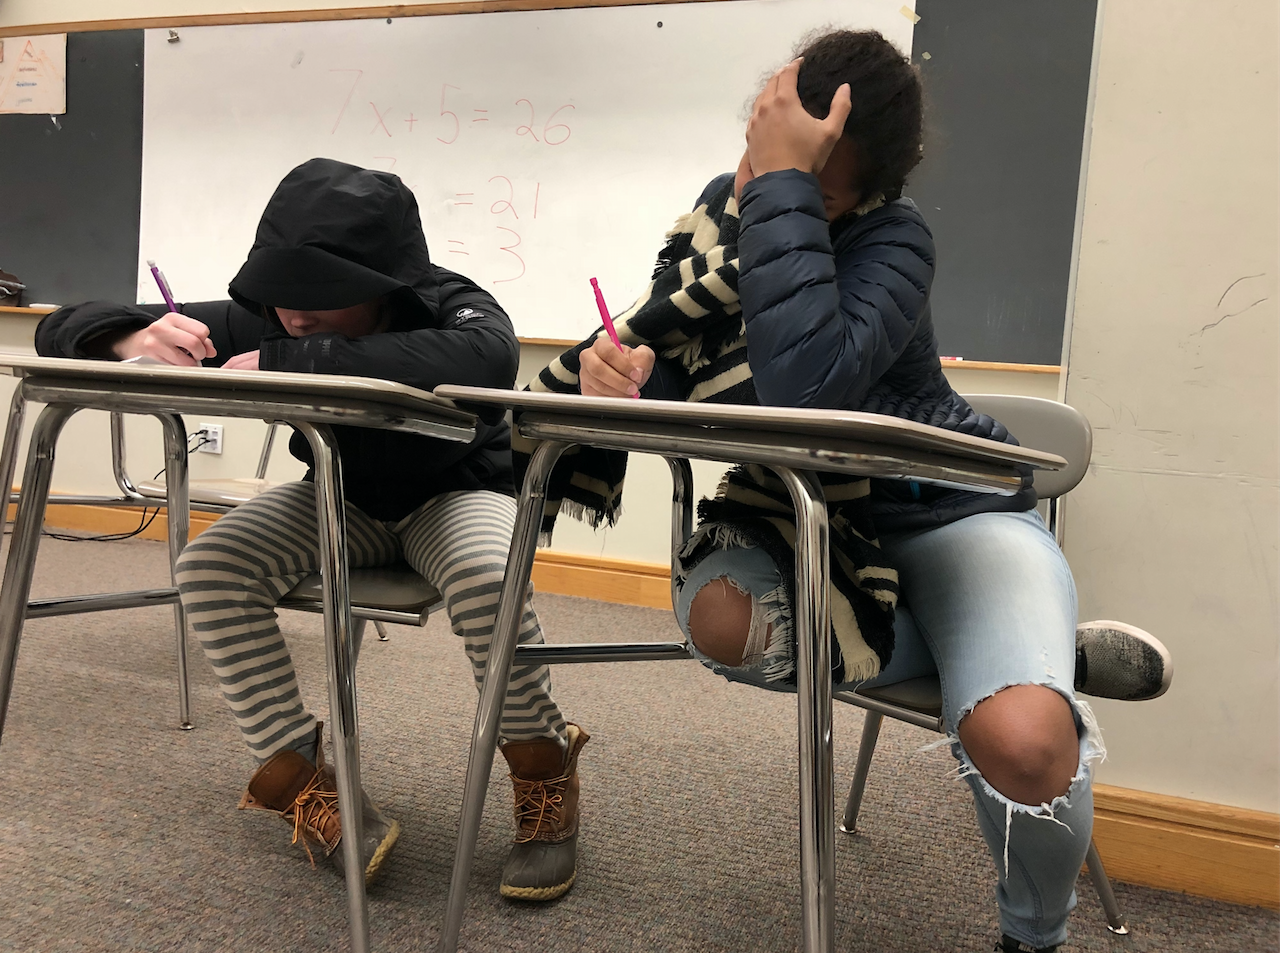 Students often resort to wearing full winter gear in class in an attempt to combat the cold and to help their learning experience.